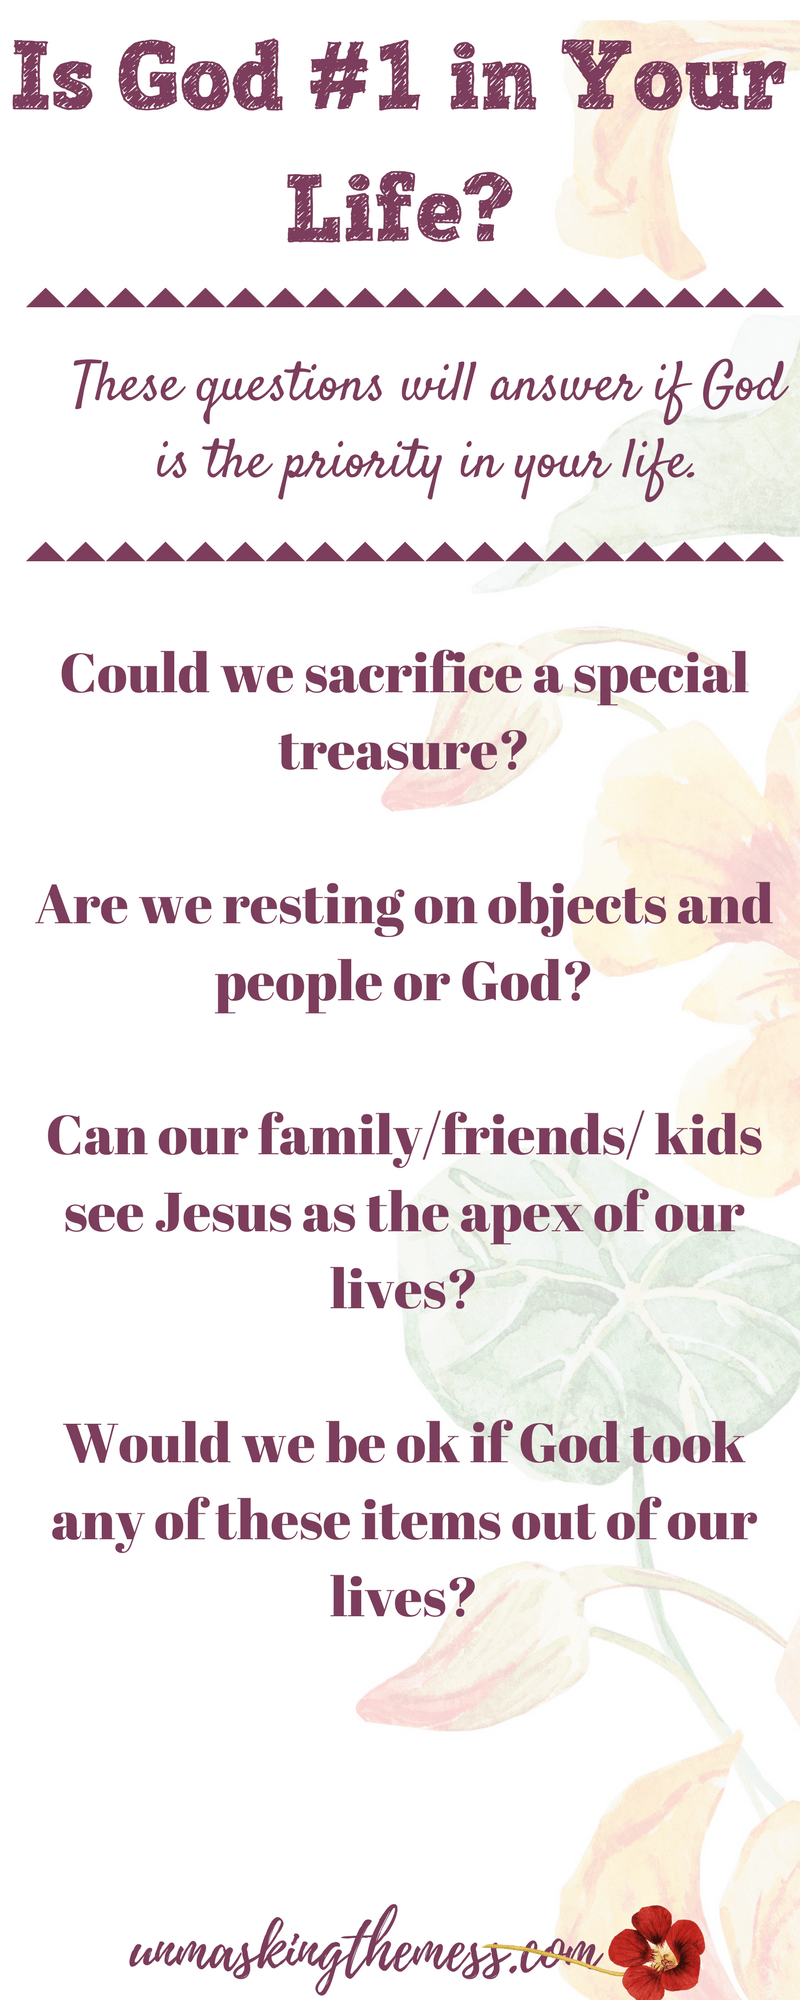 Can You Give Up Your Child For God. I've heard that if we can't give something up, it means we have a problem. I admit my problem is I don't trust God enough. Six results when we seek first the Kingdom of God. #God #livingoutfaith #priority #faith